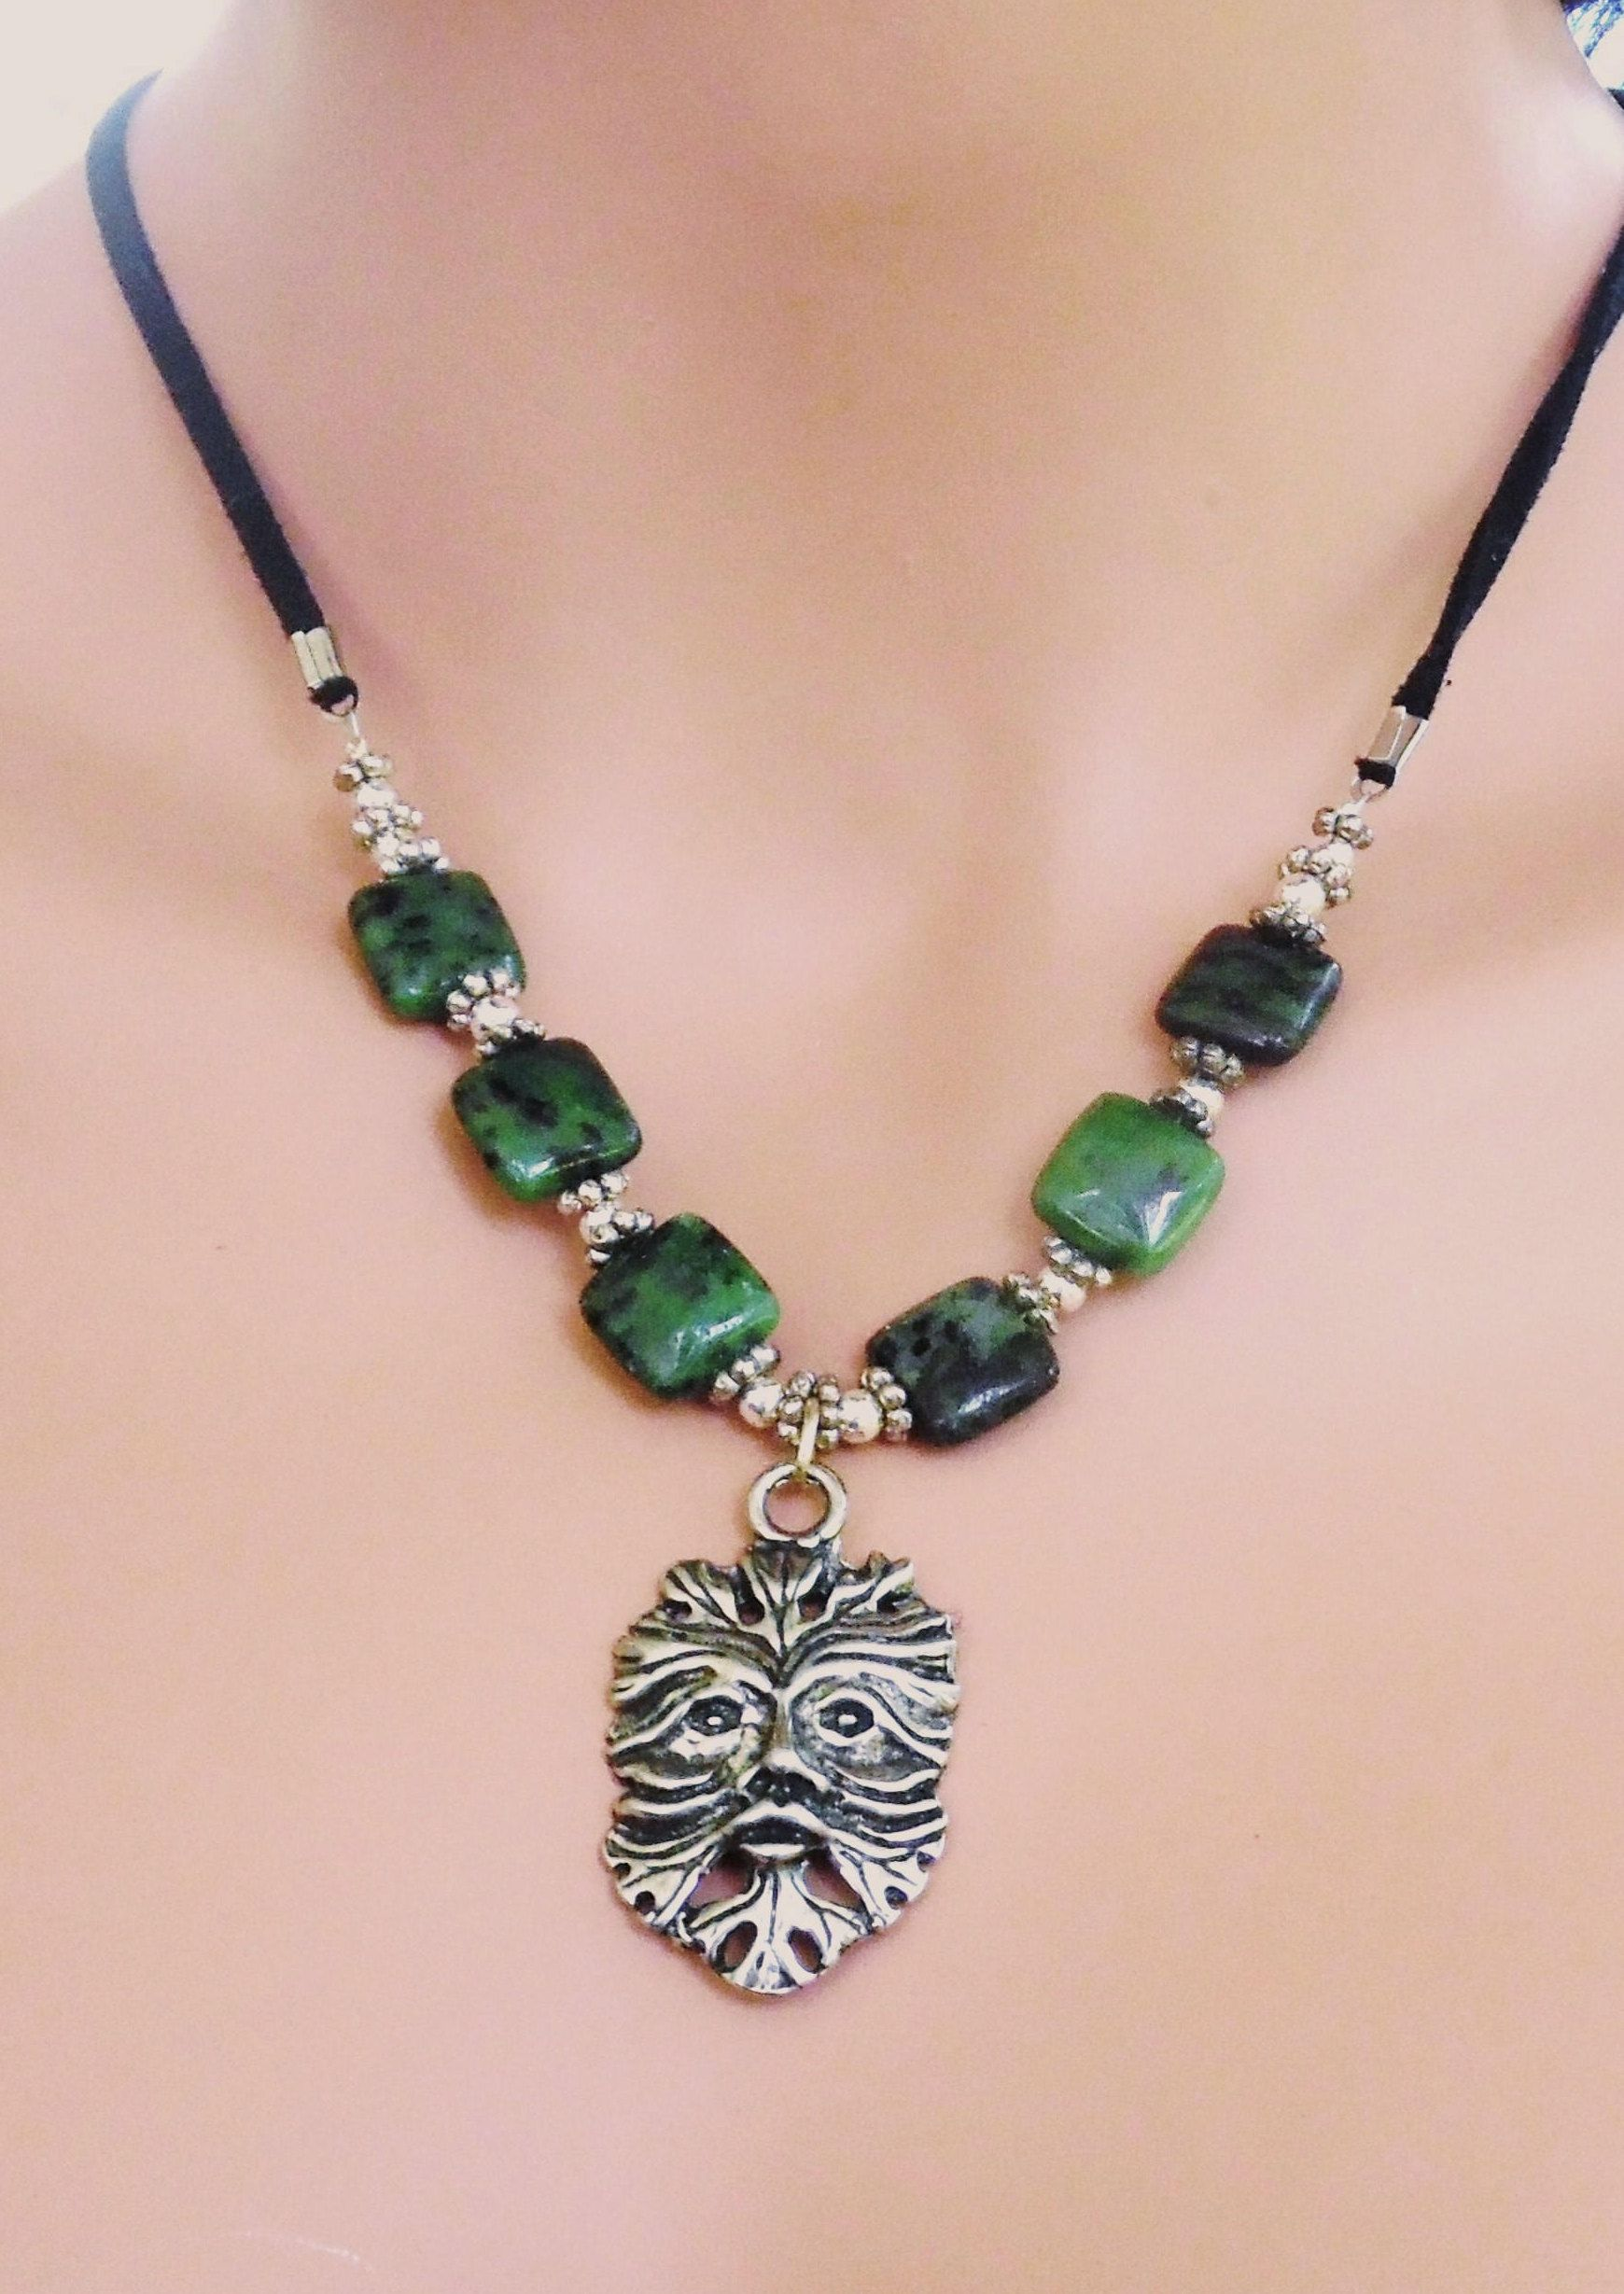 earth fullxfull handmade tones of for zen buddha il necklace compassionate photo spiritual jewelry face earthy pendant statue